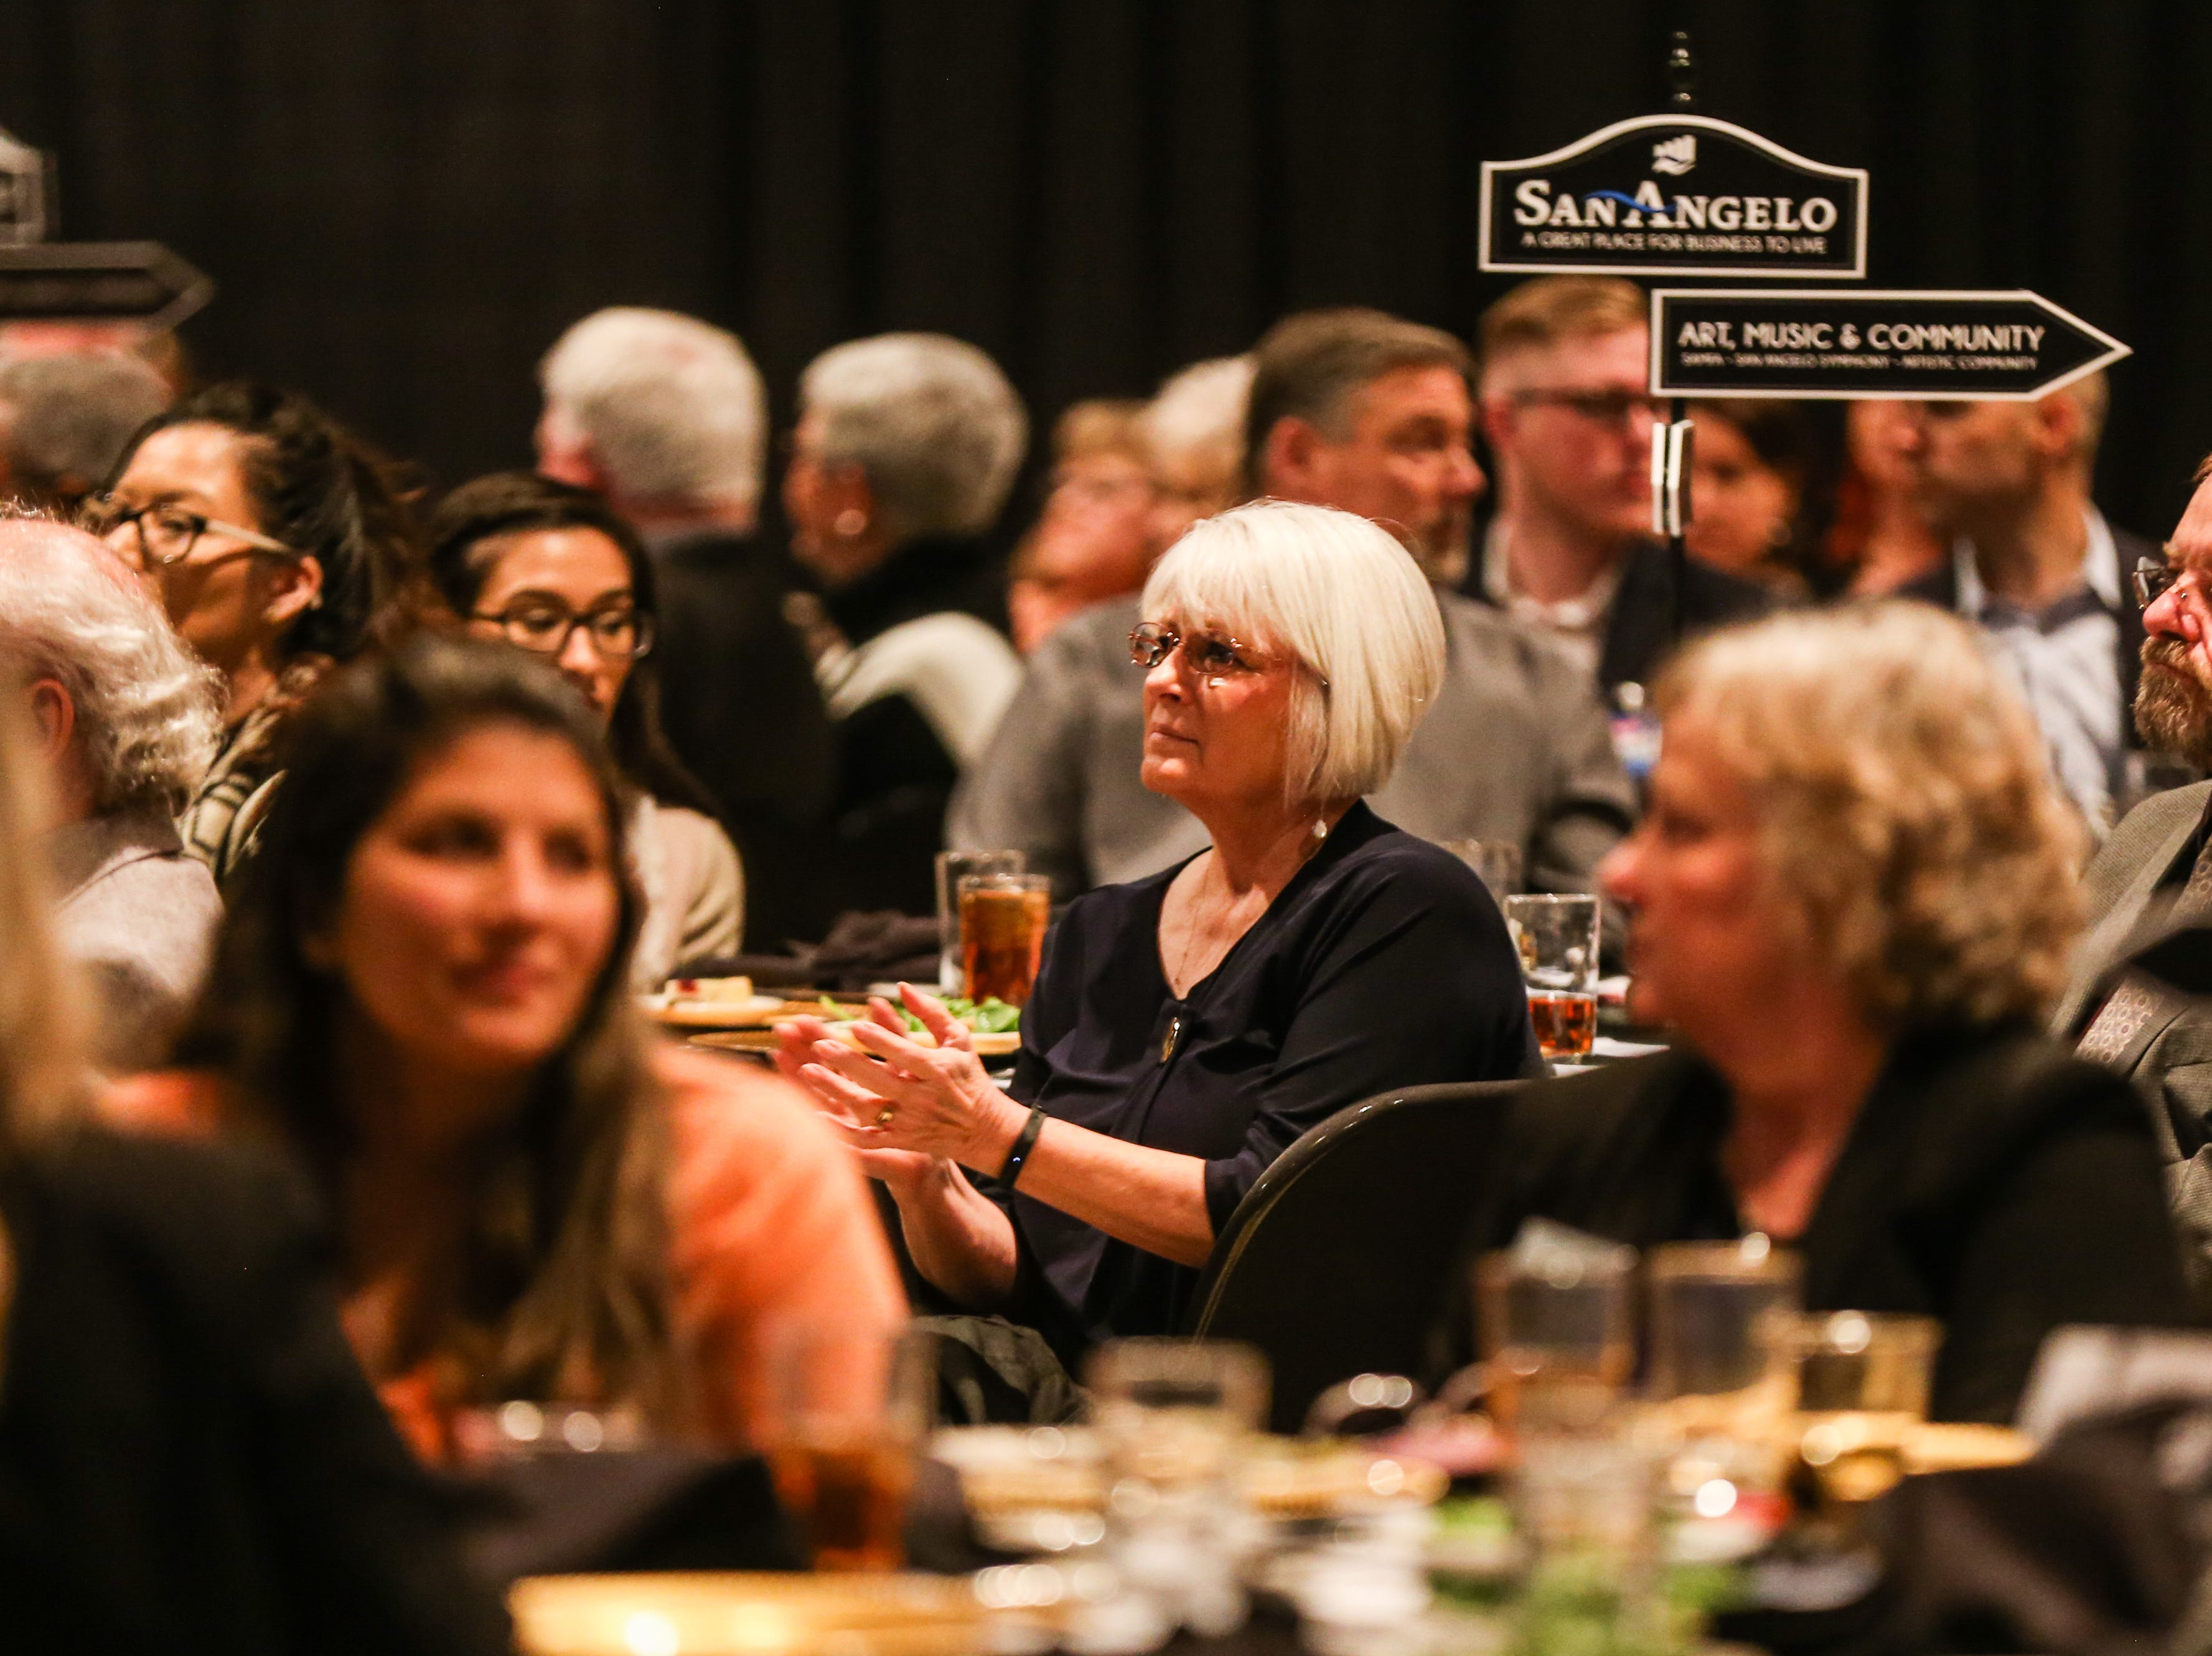 People listen to the speaker during the San Angelo Chamber of Commerce Annual Banquet Thursday, Jan. 24, 2019, at McNease Convention Center.